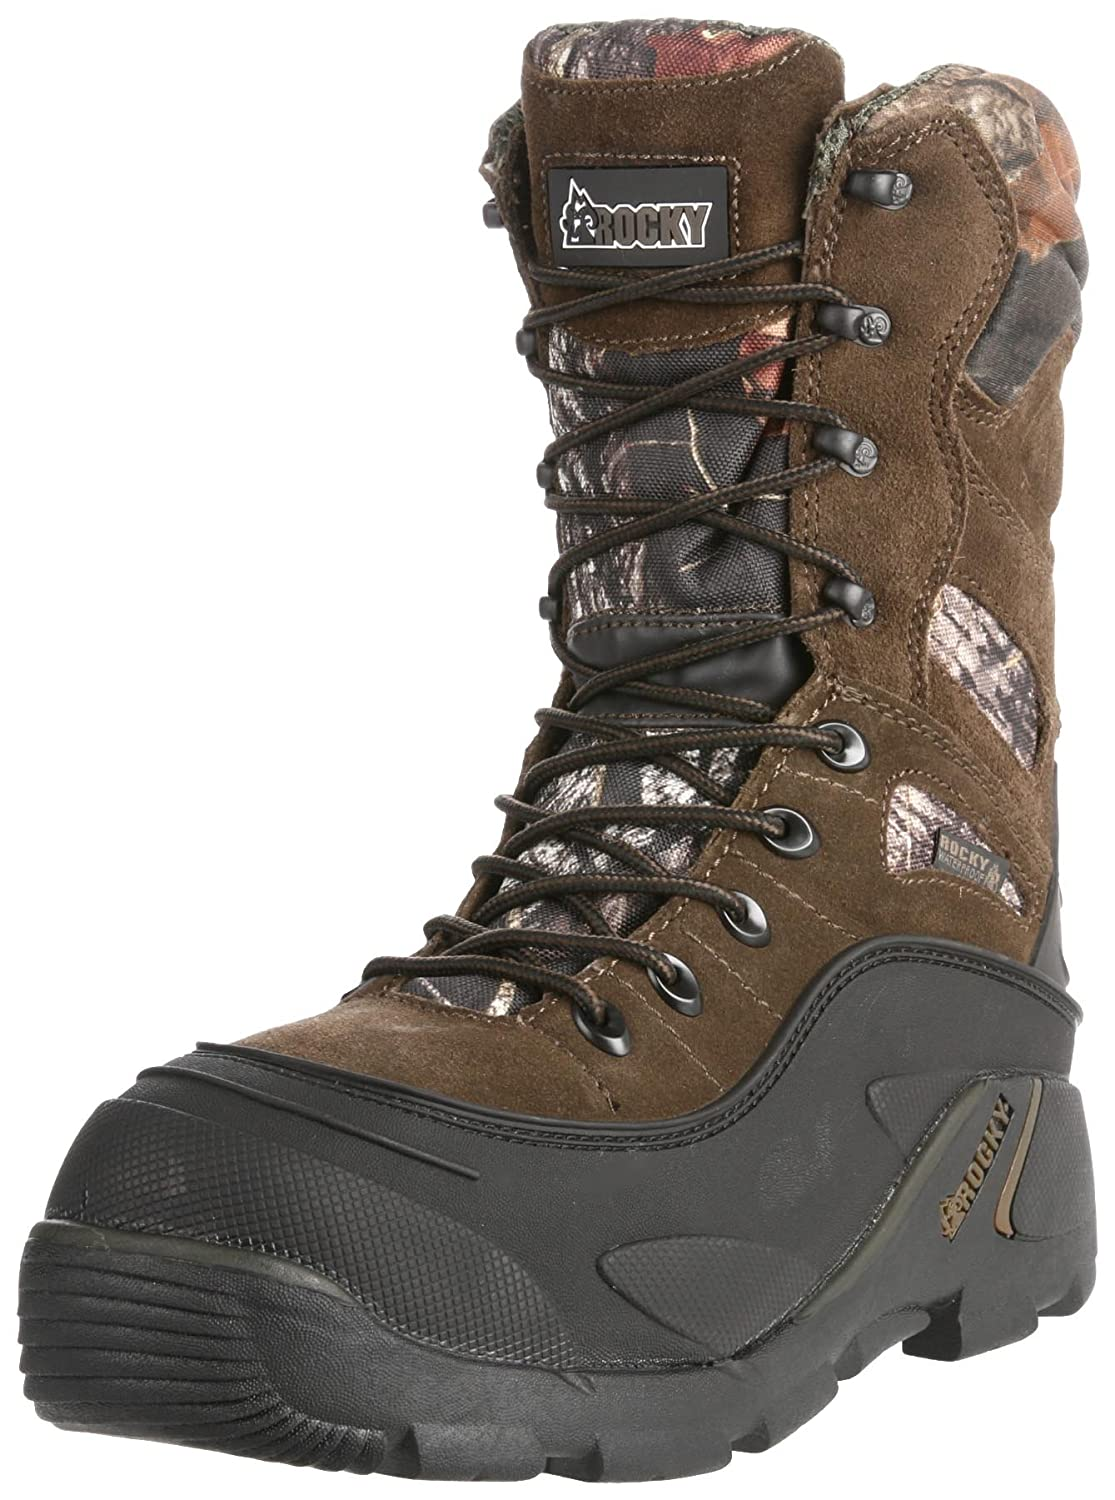 Rocky Men's Lynx Hunting Boot high-quality - www.gcdsolutions.com